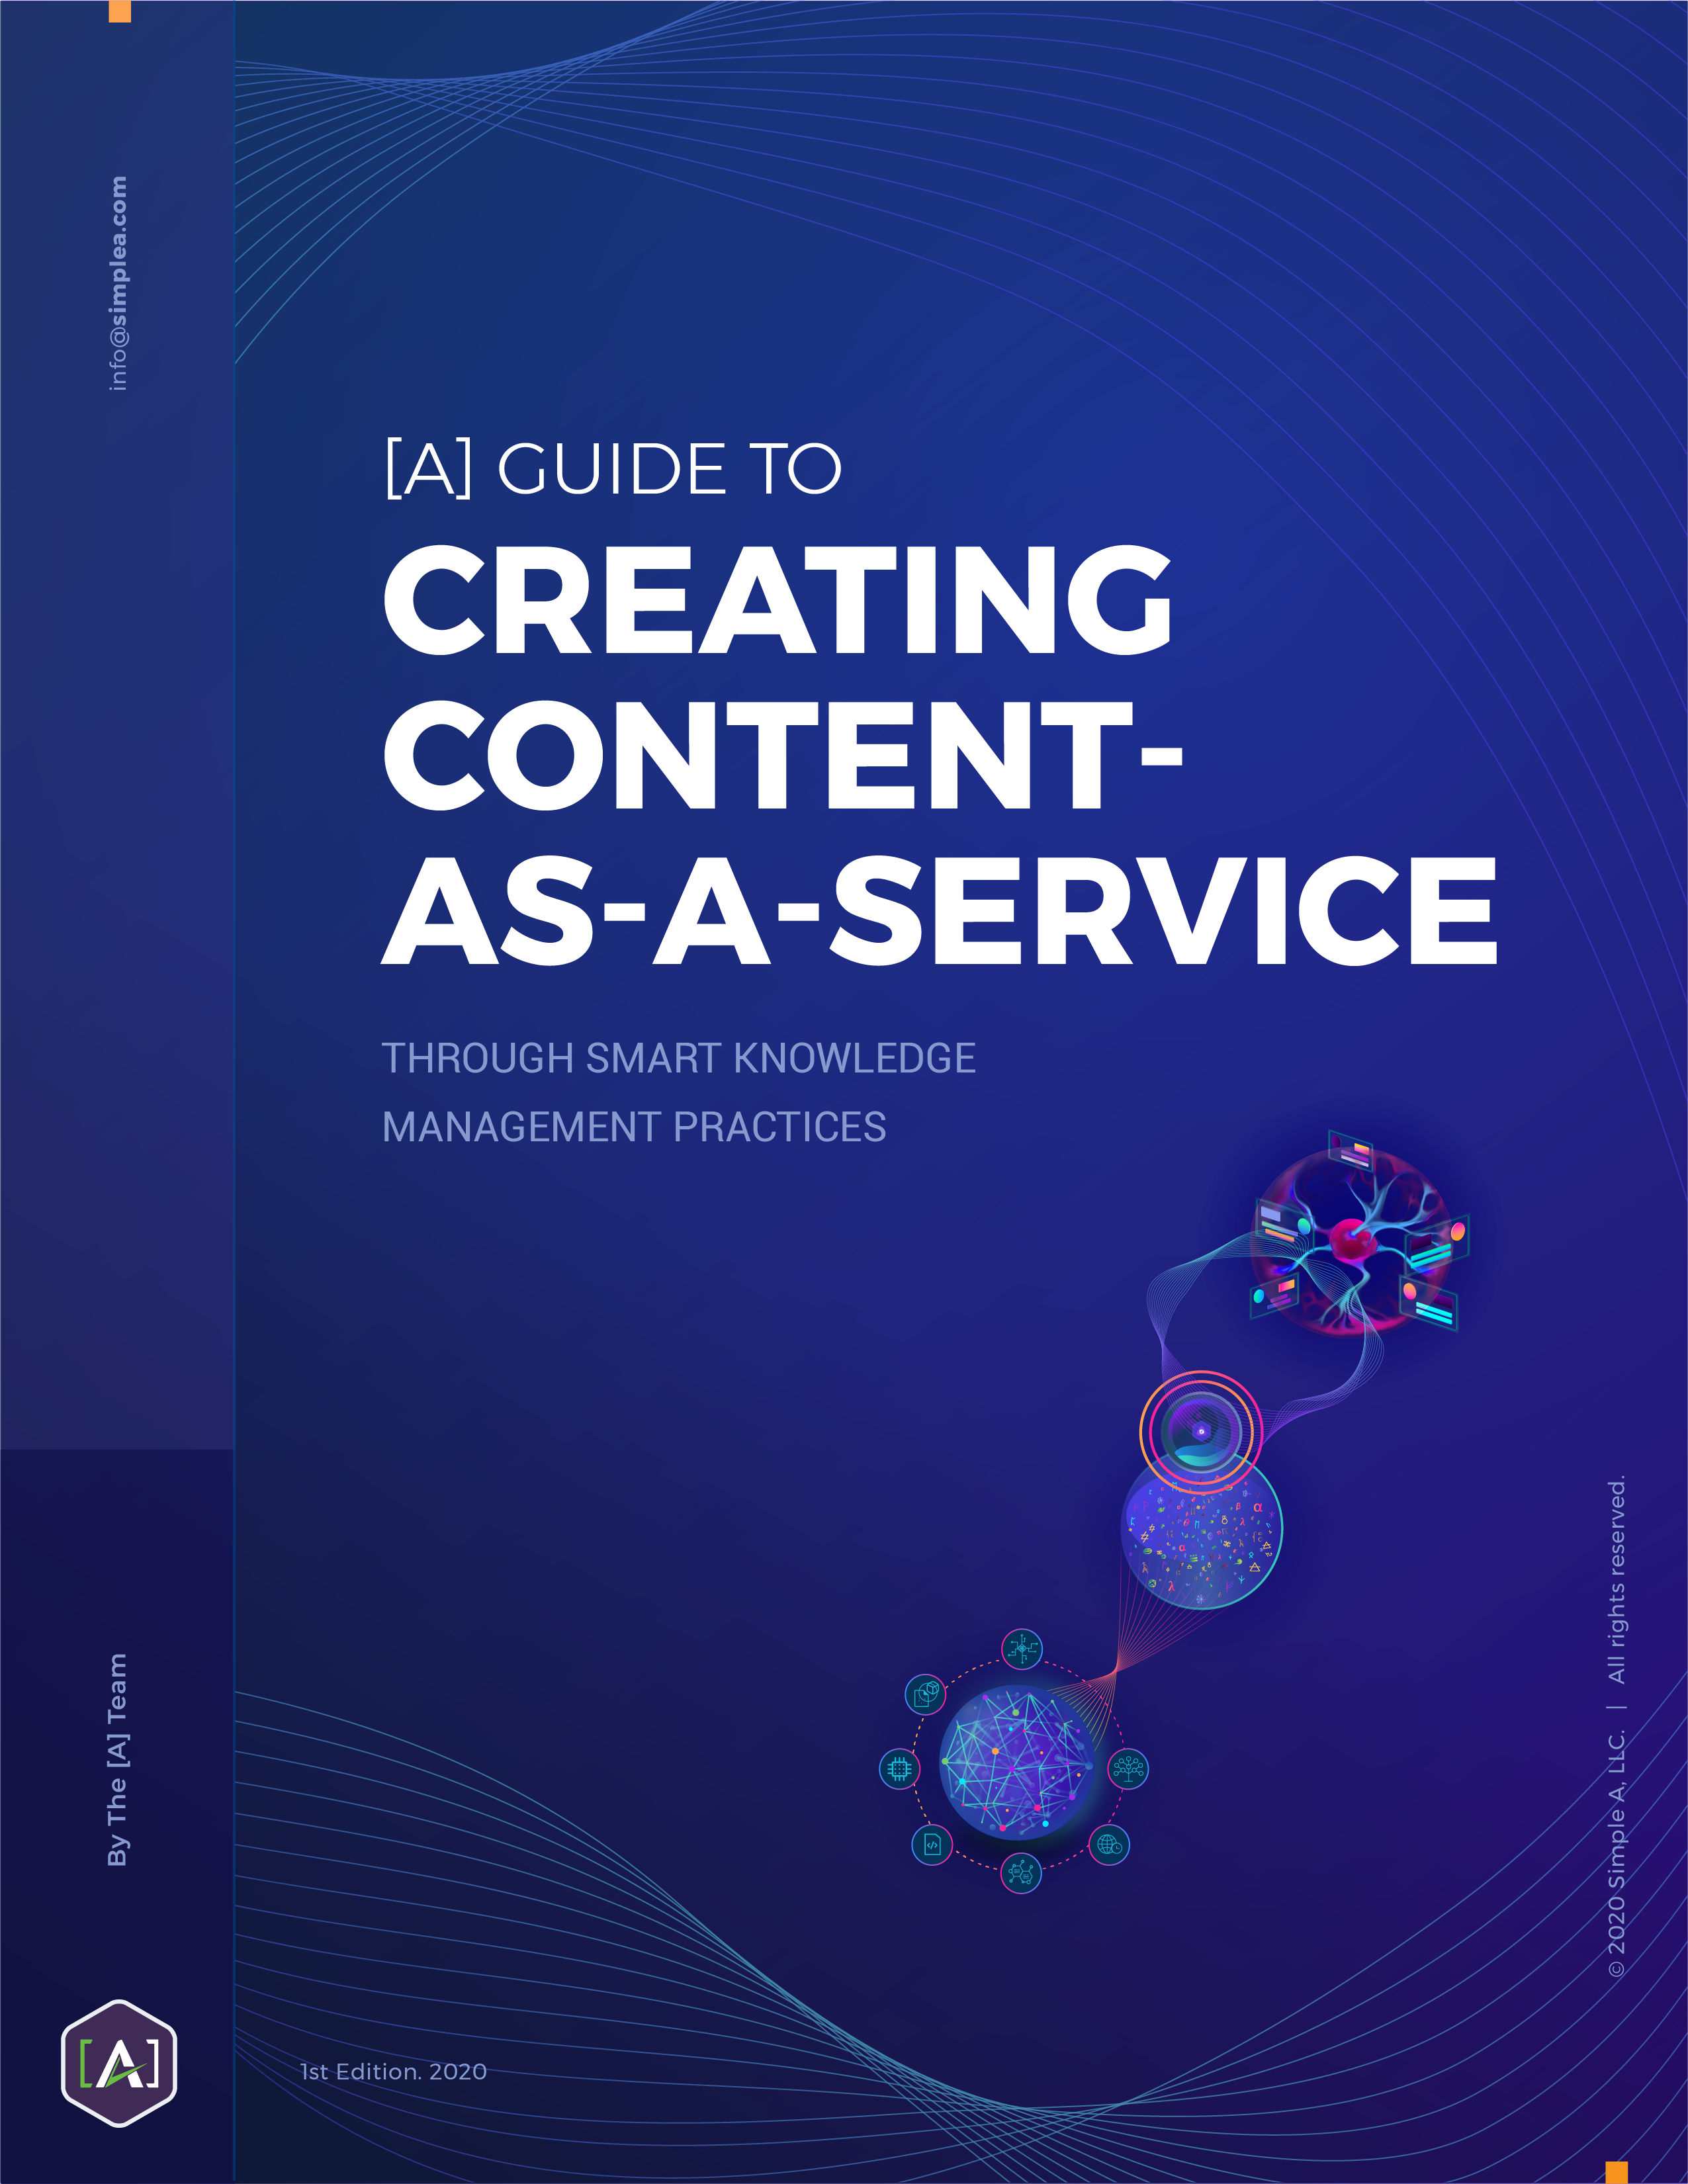 [A] Guide to Creating Content-as-a-Service through smart Knowledge Management practices